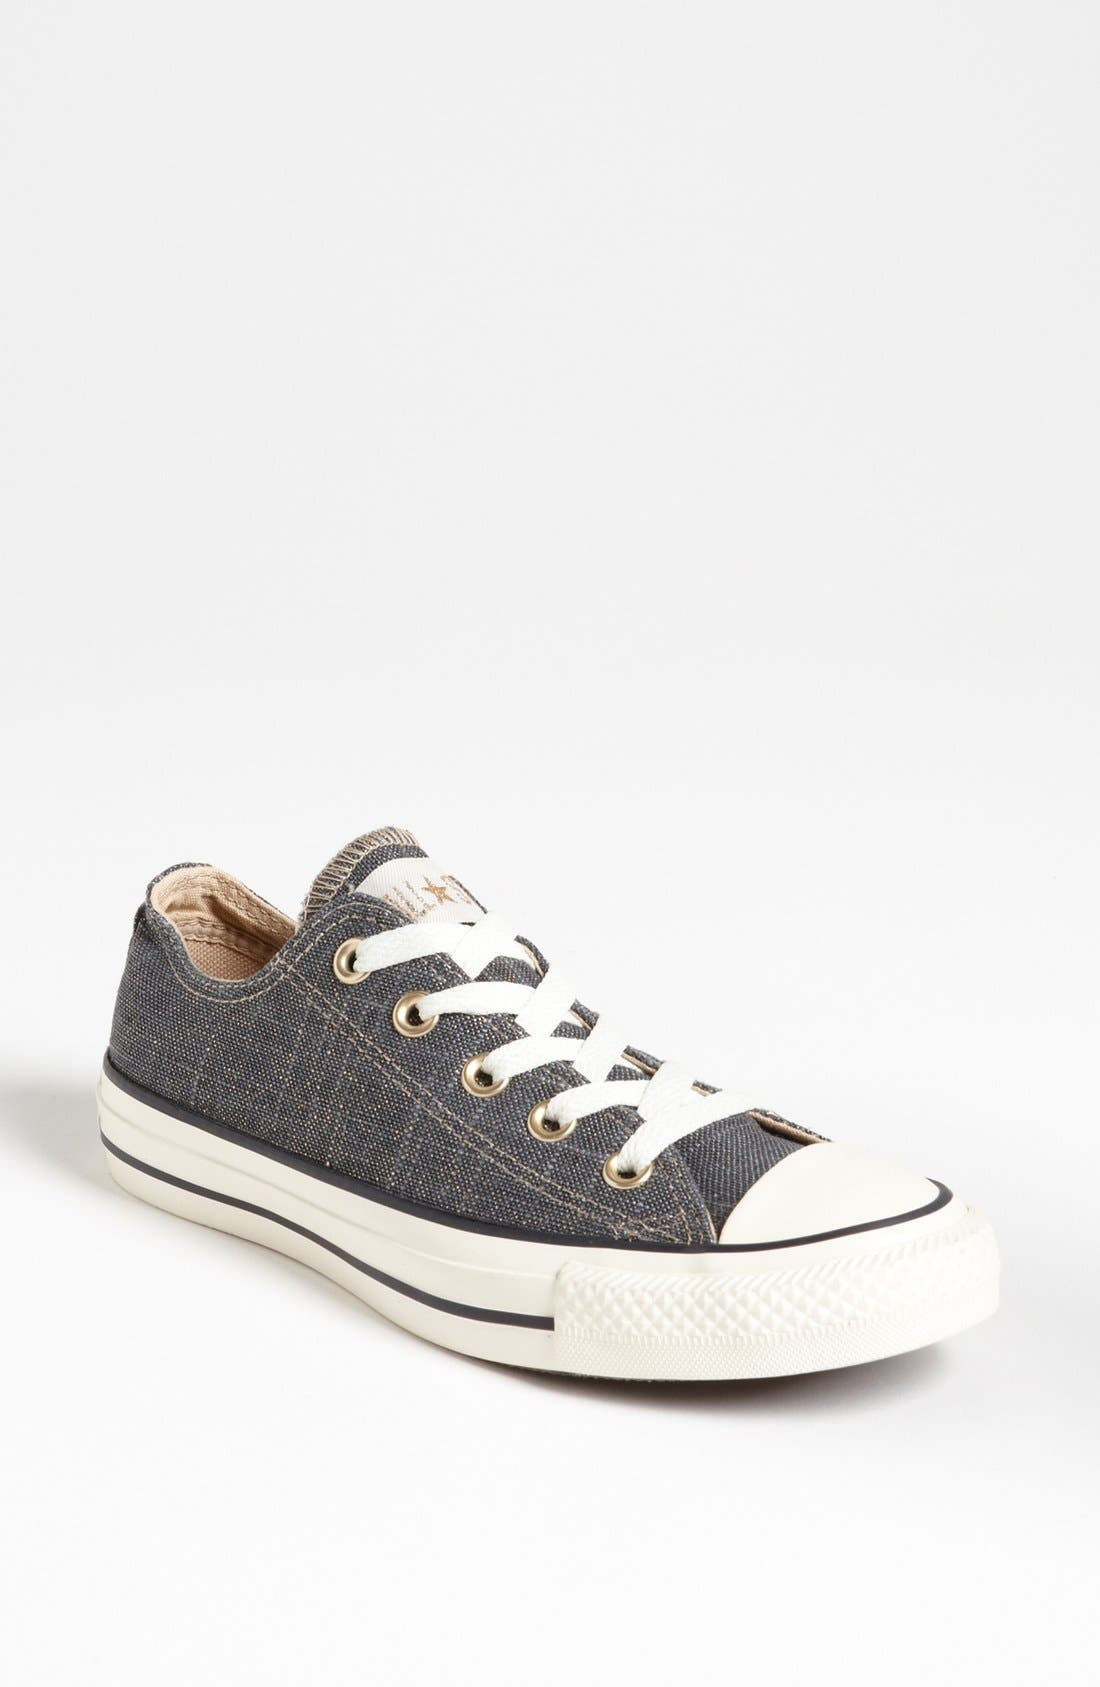 Alternate Image 1 Selected - Converse Chuck Taylor® All Star® 'Textured' Sneaker (Women)